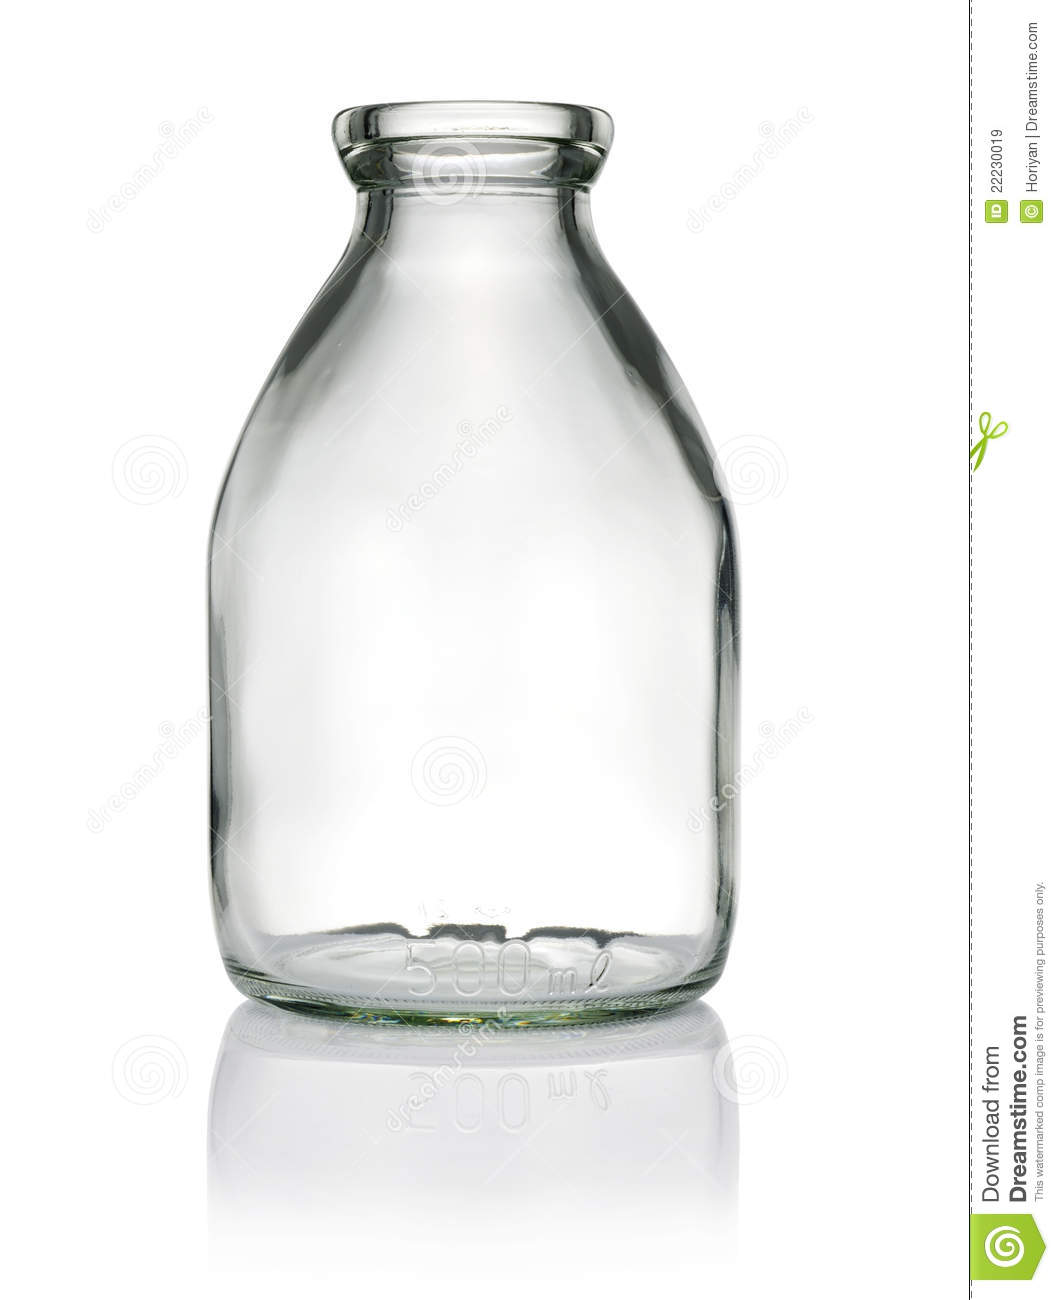 Empty Bottle Royalty Free Stock Images - Image: 22230019